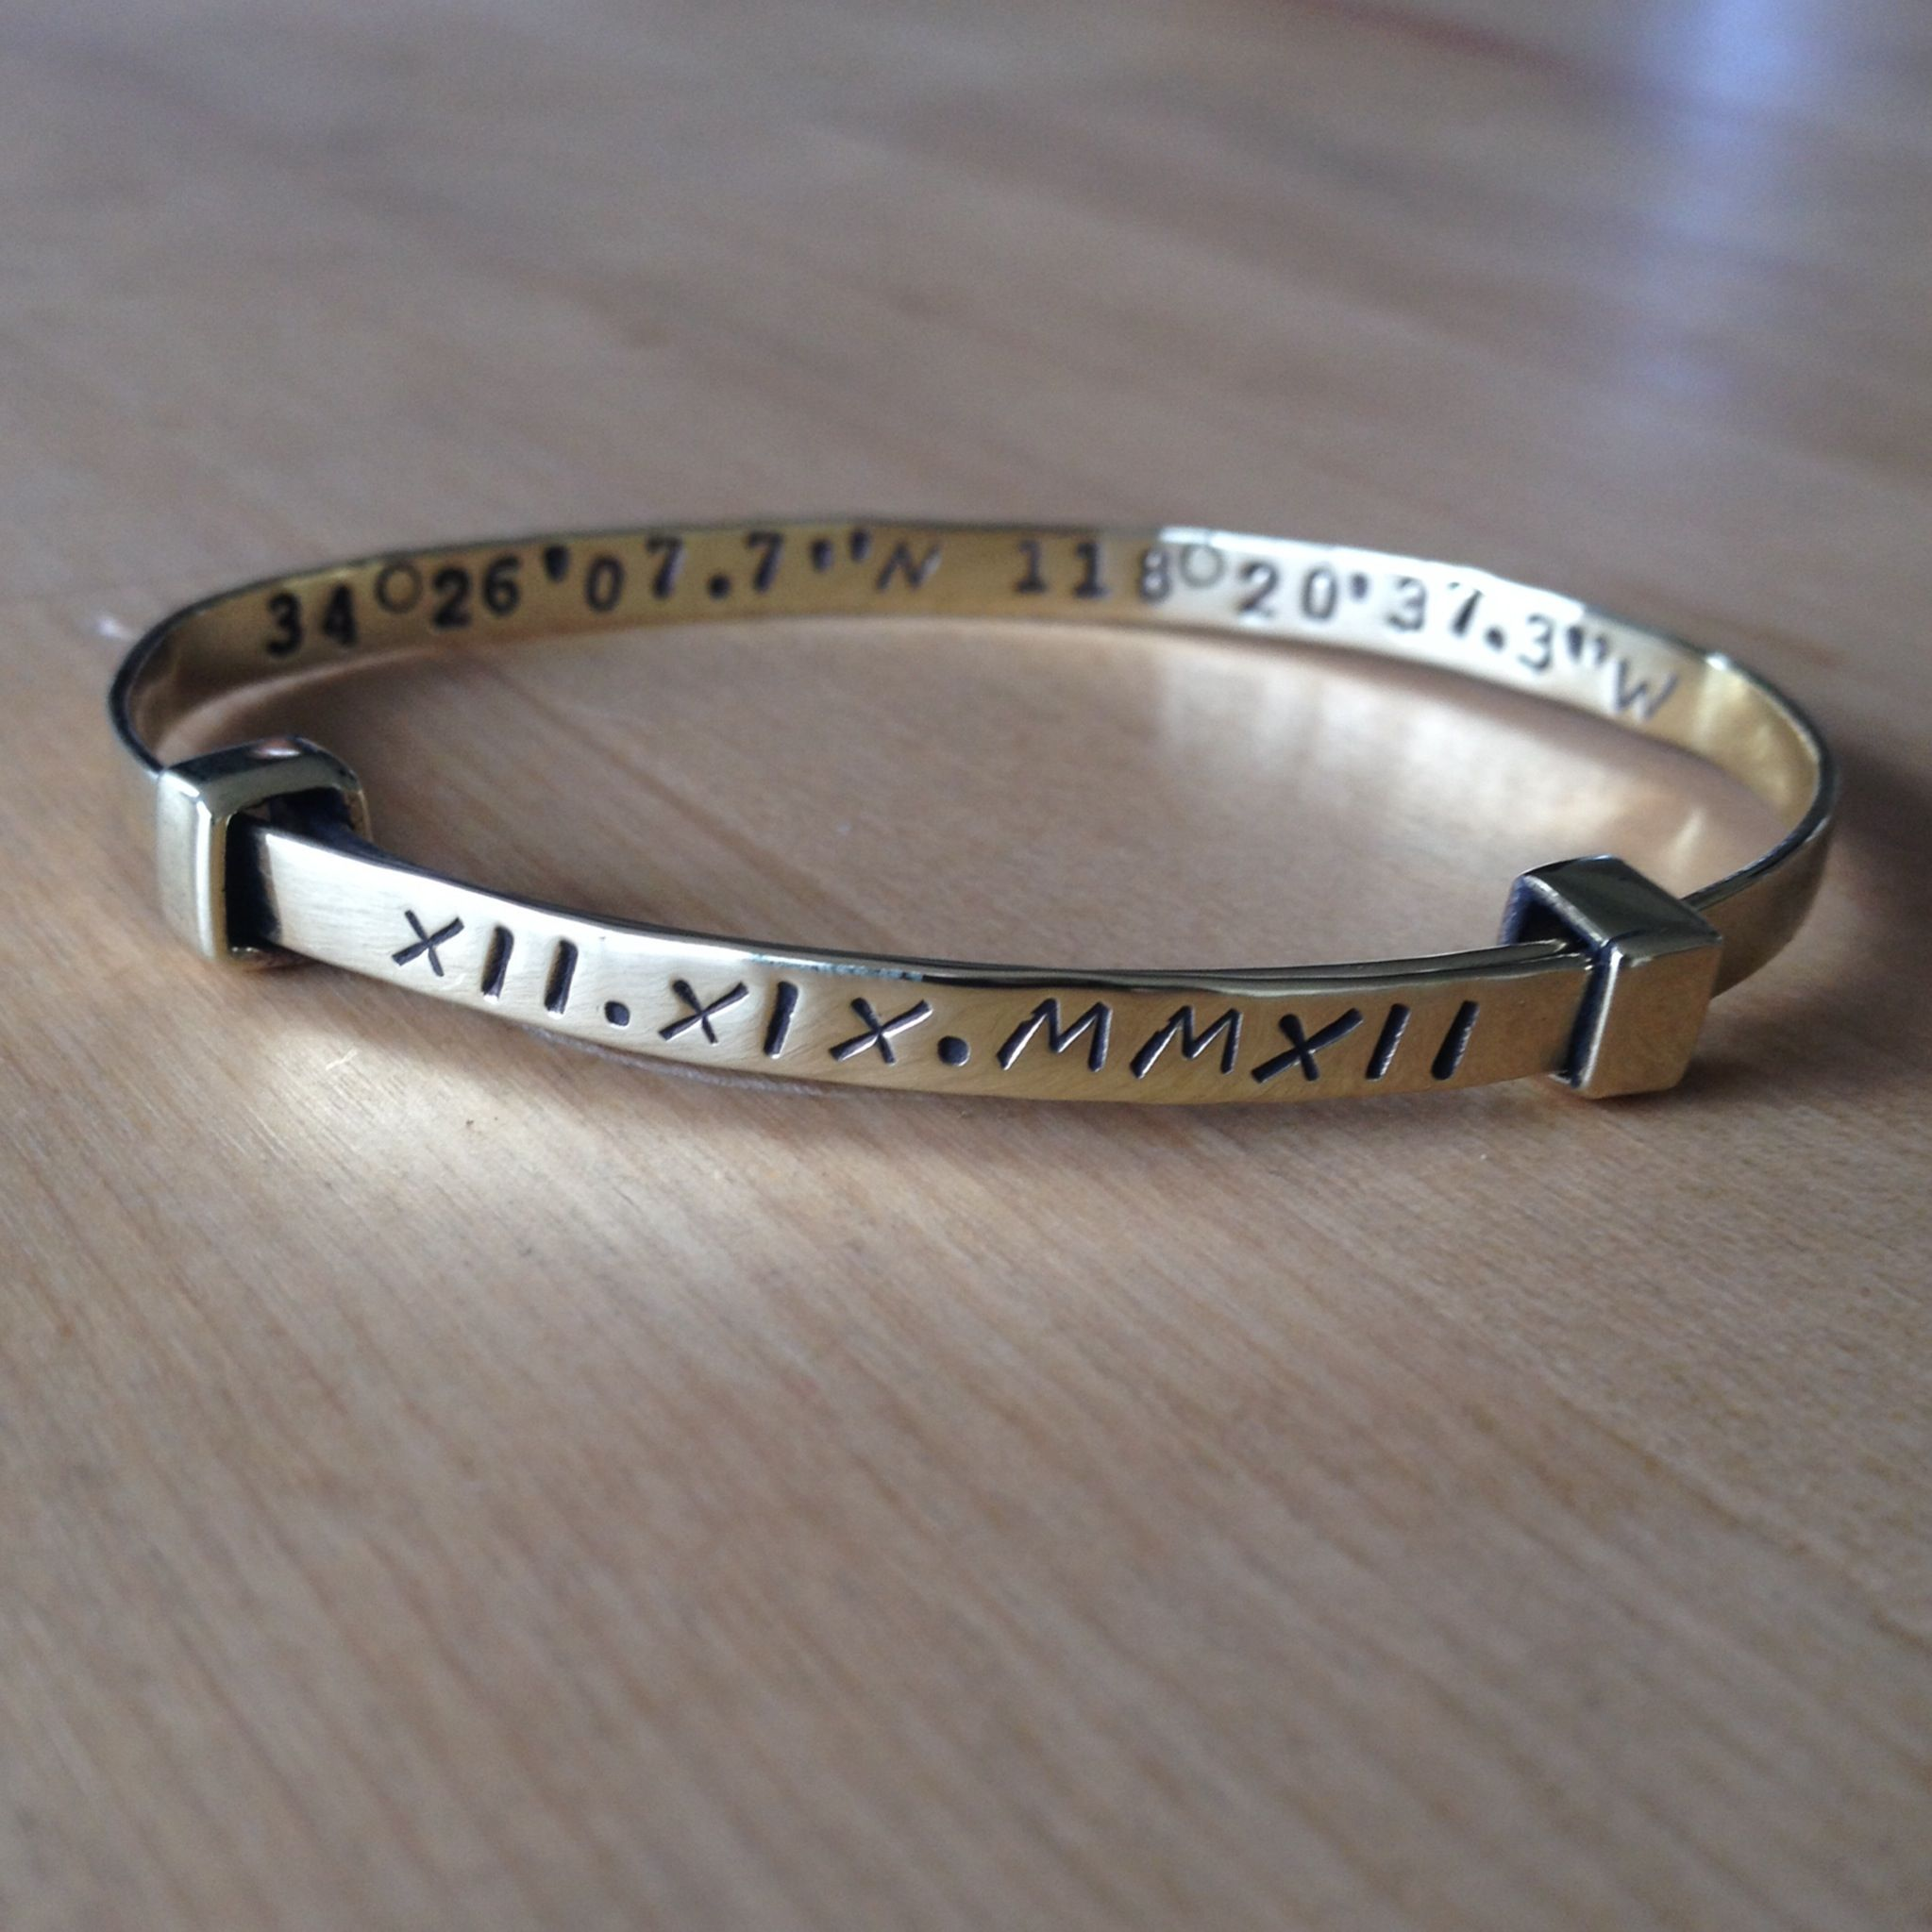 leather latitude longitude bracelet image is coordinates itm loading s personalised